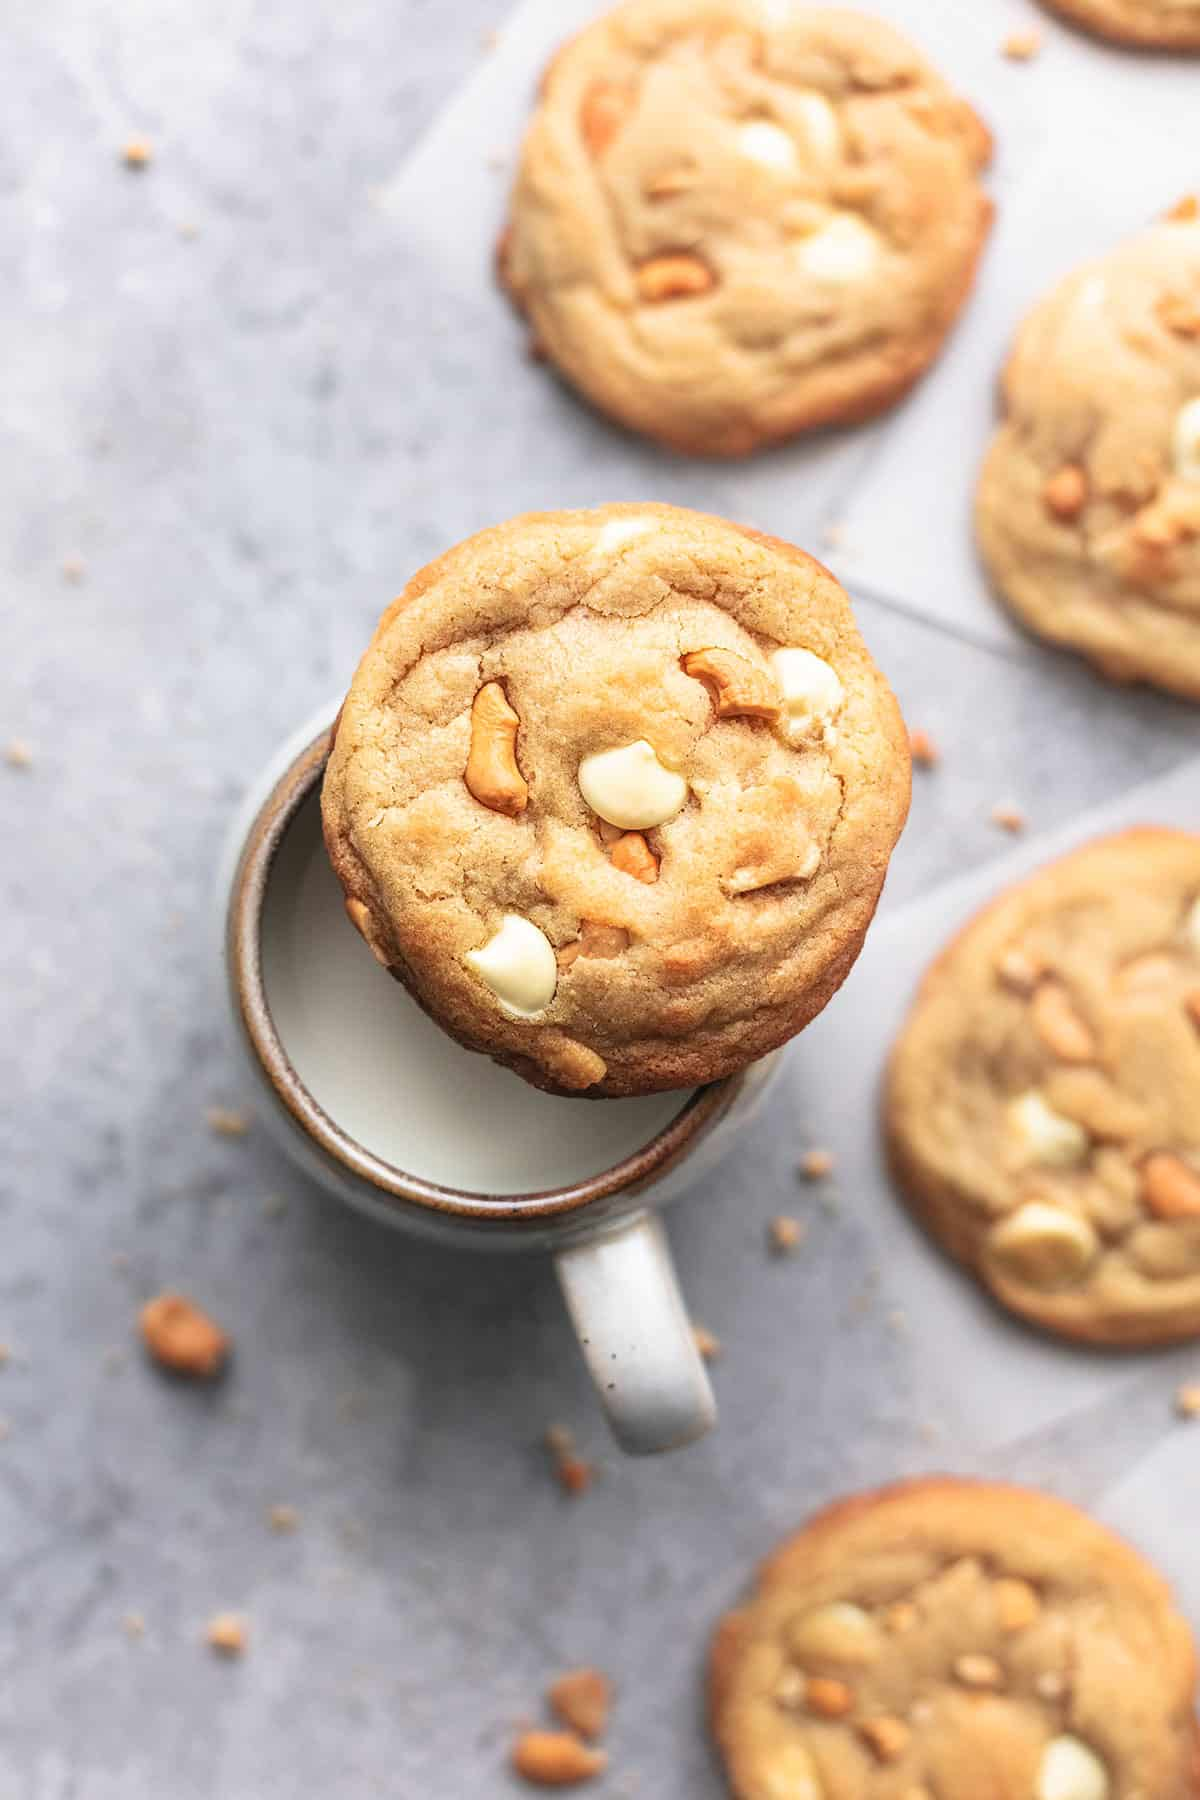 top view of a chewy white chocolate cashew cookie on a mug of milk with more cookies on the side.